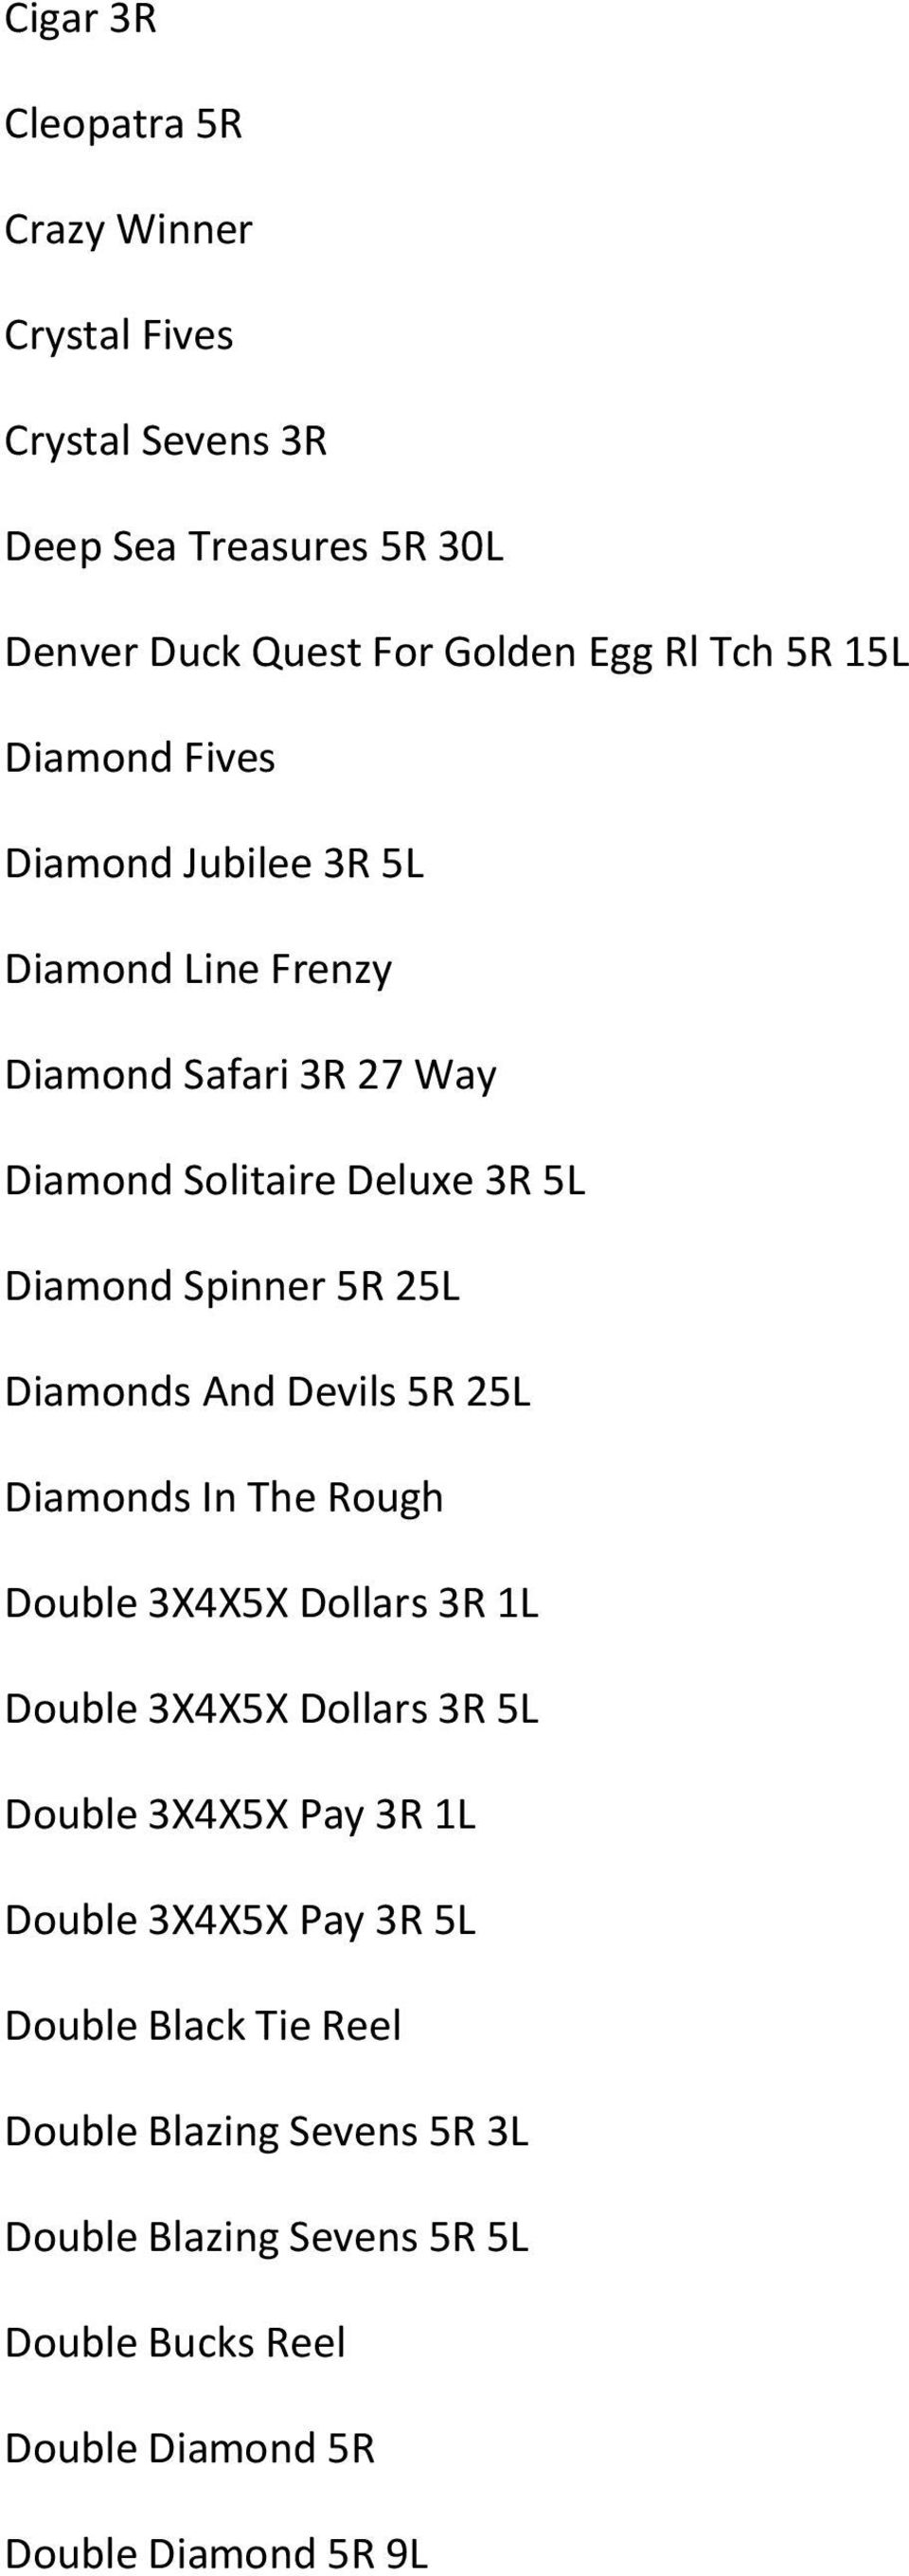 Diamonds And Devils 5R 25L Diamonds In The Rough Double 3X4X5X Dollars 3R 1L Double 3X4X5X Dollars 3R 5L Double 3X4X5X Pay 3R 1L Double